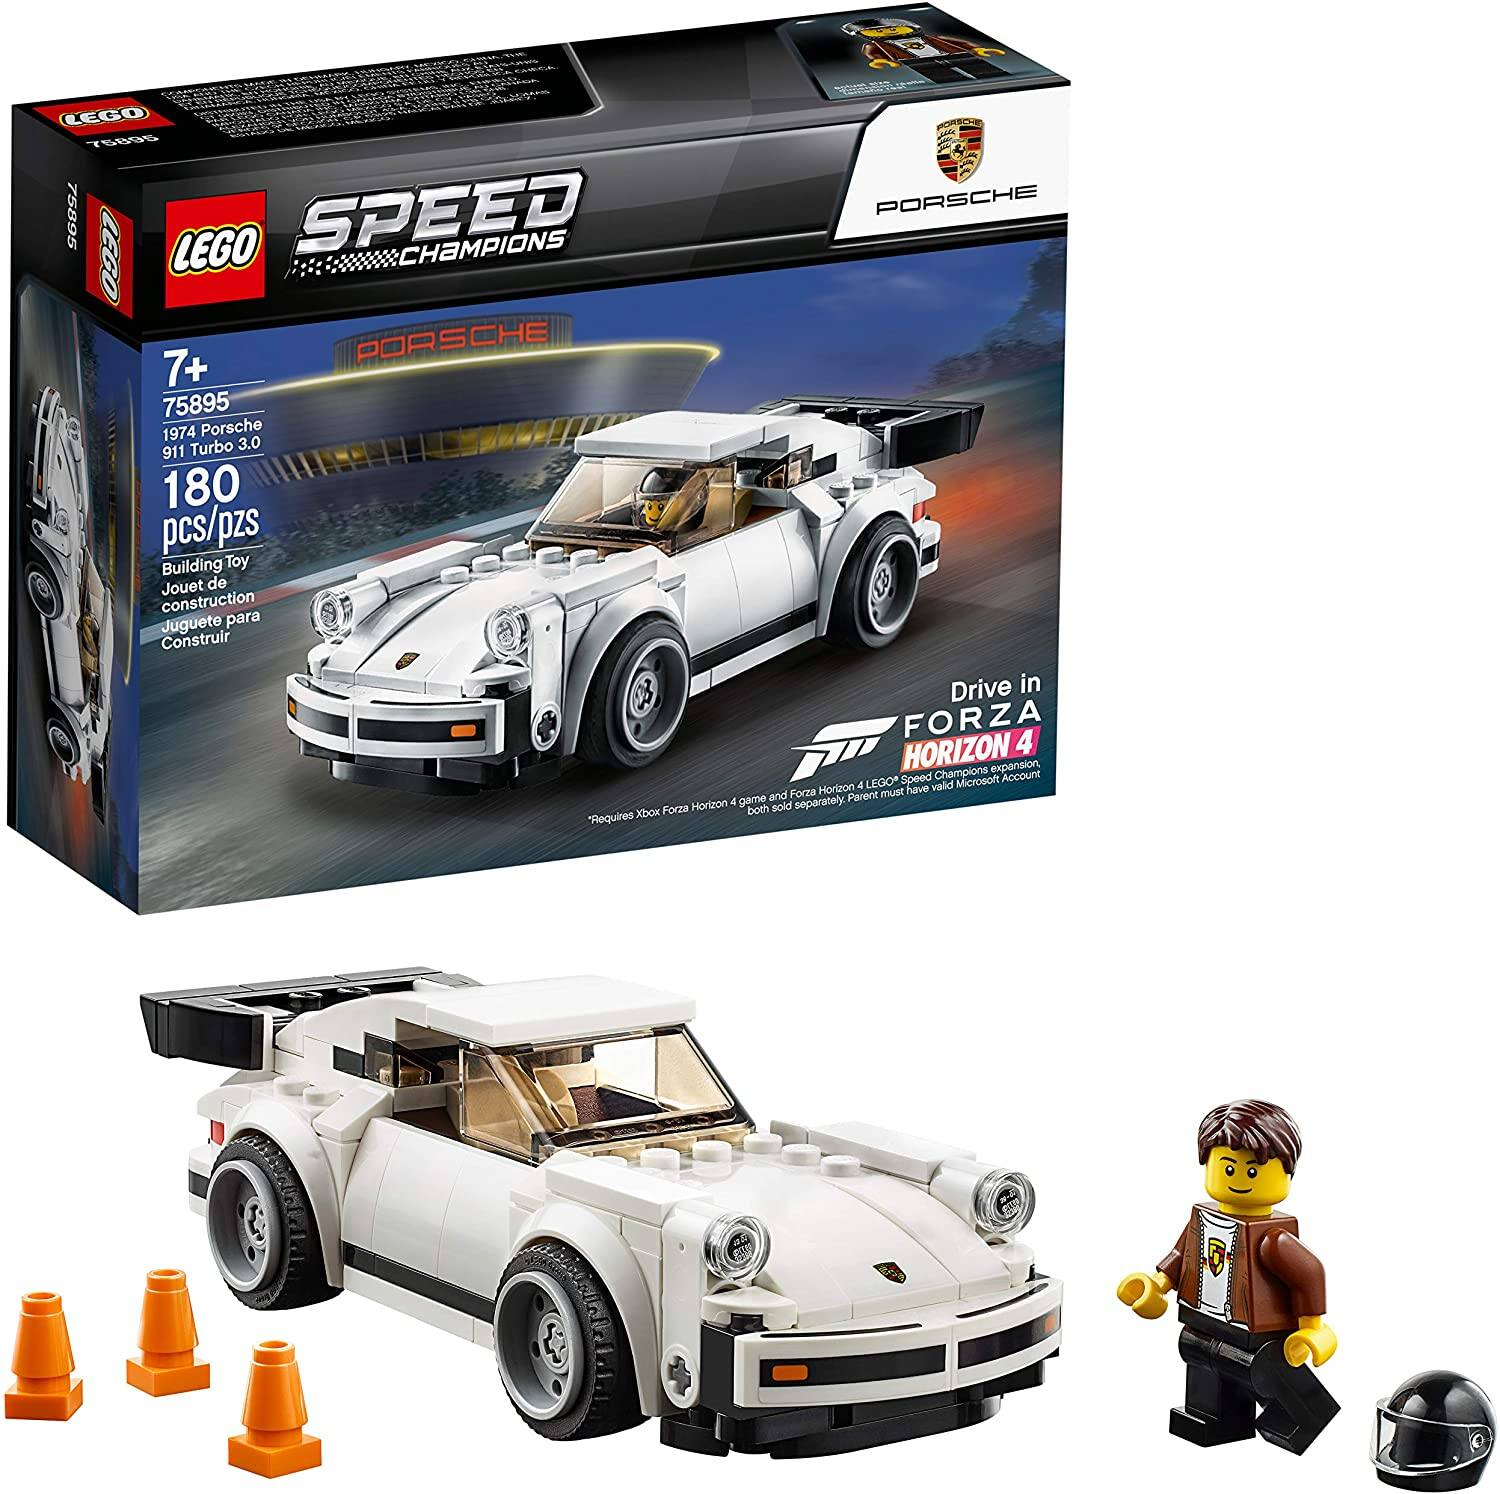 LEGO Speed Champions 1974 Porsche 911 Turbo 3.0 Building Kit